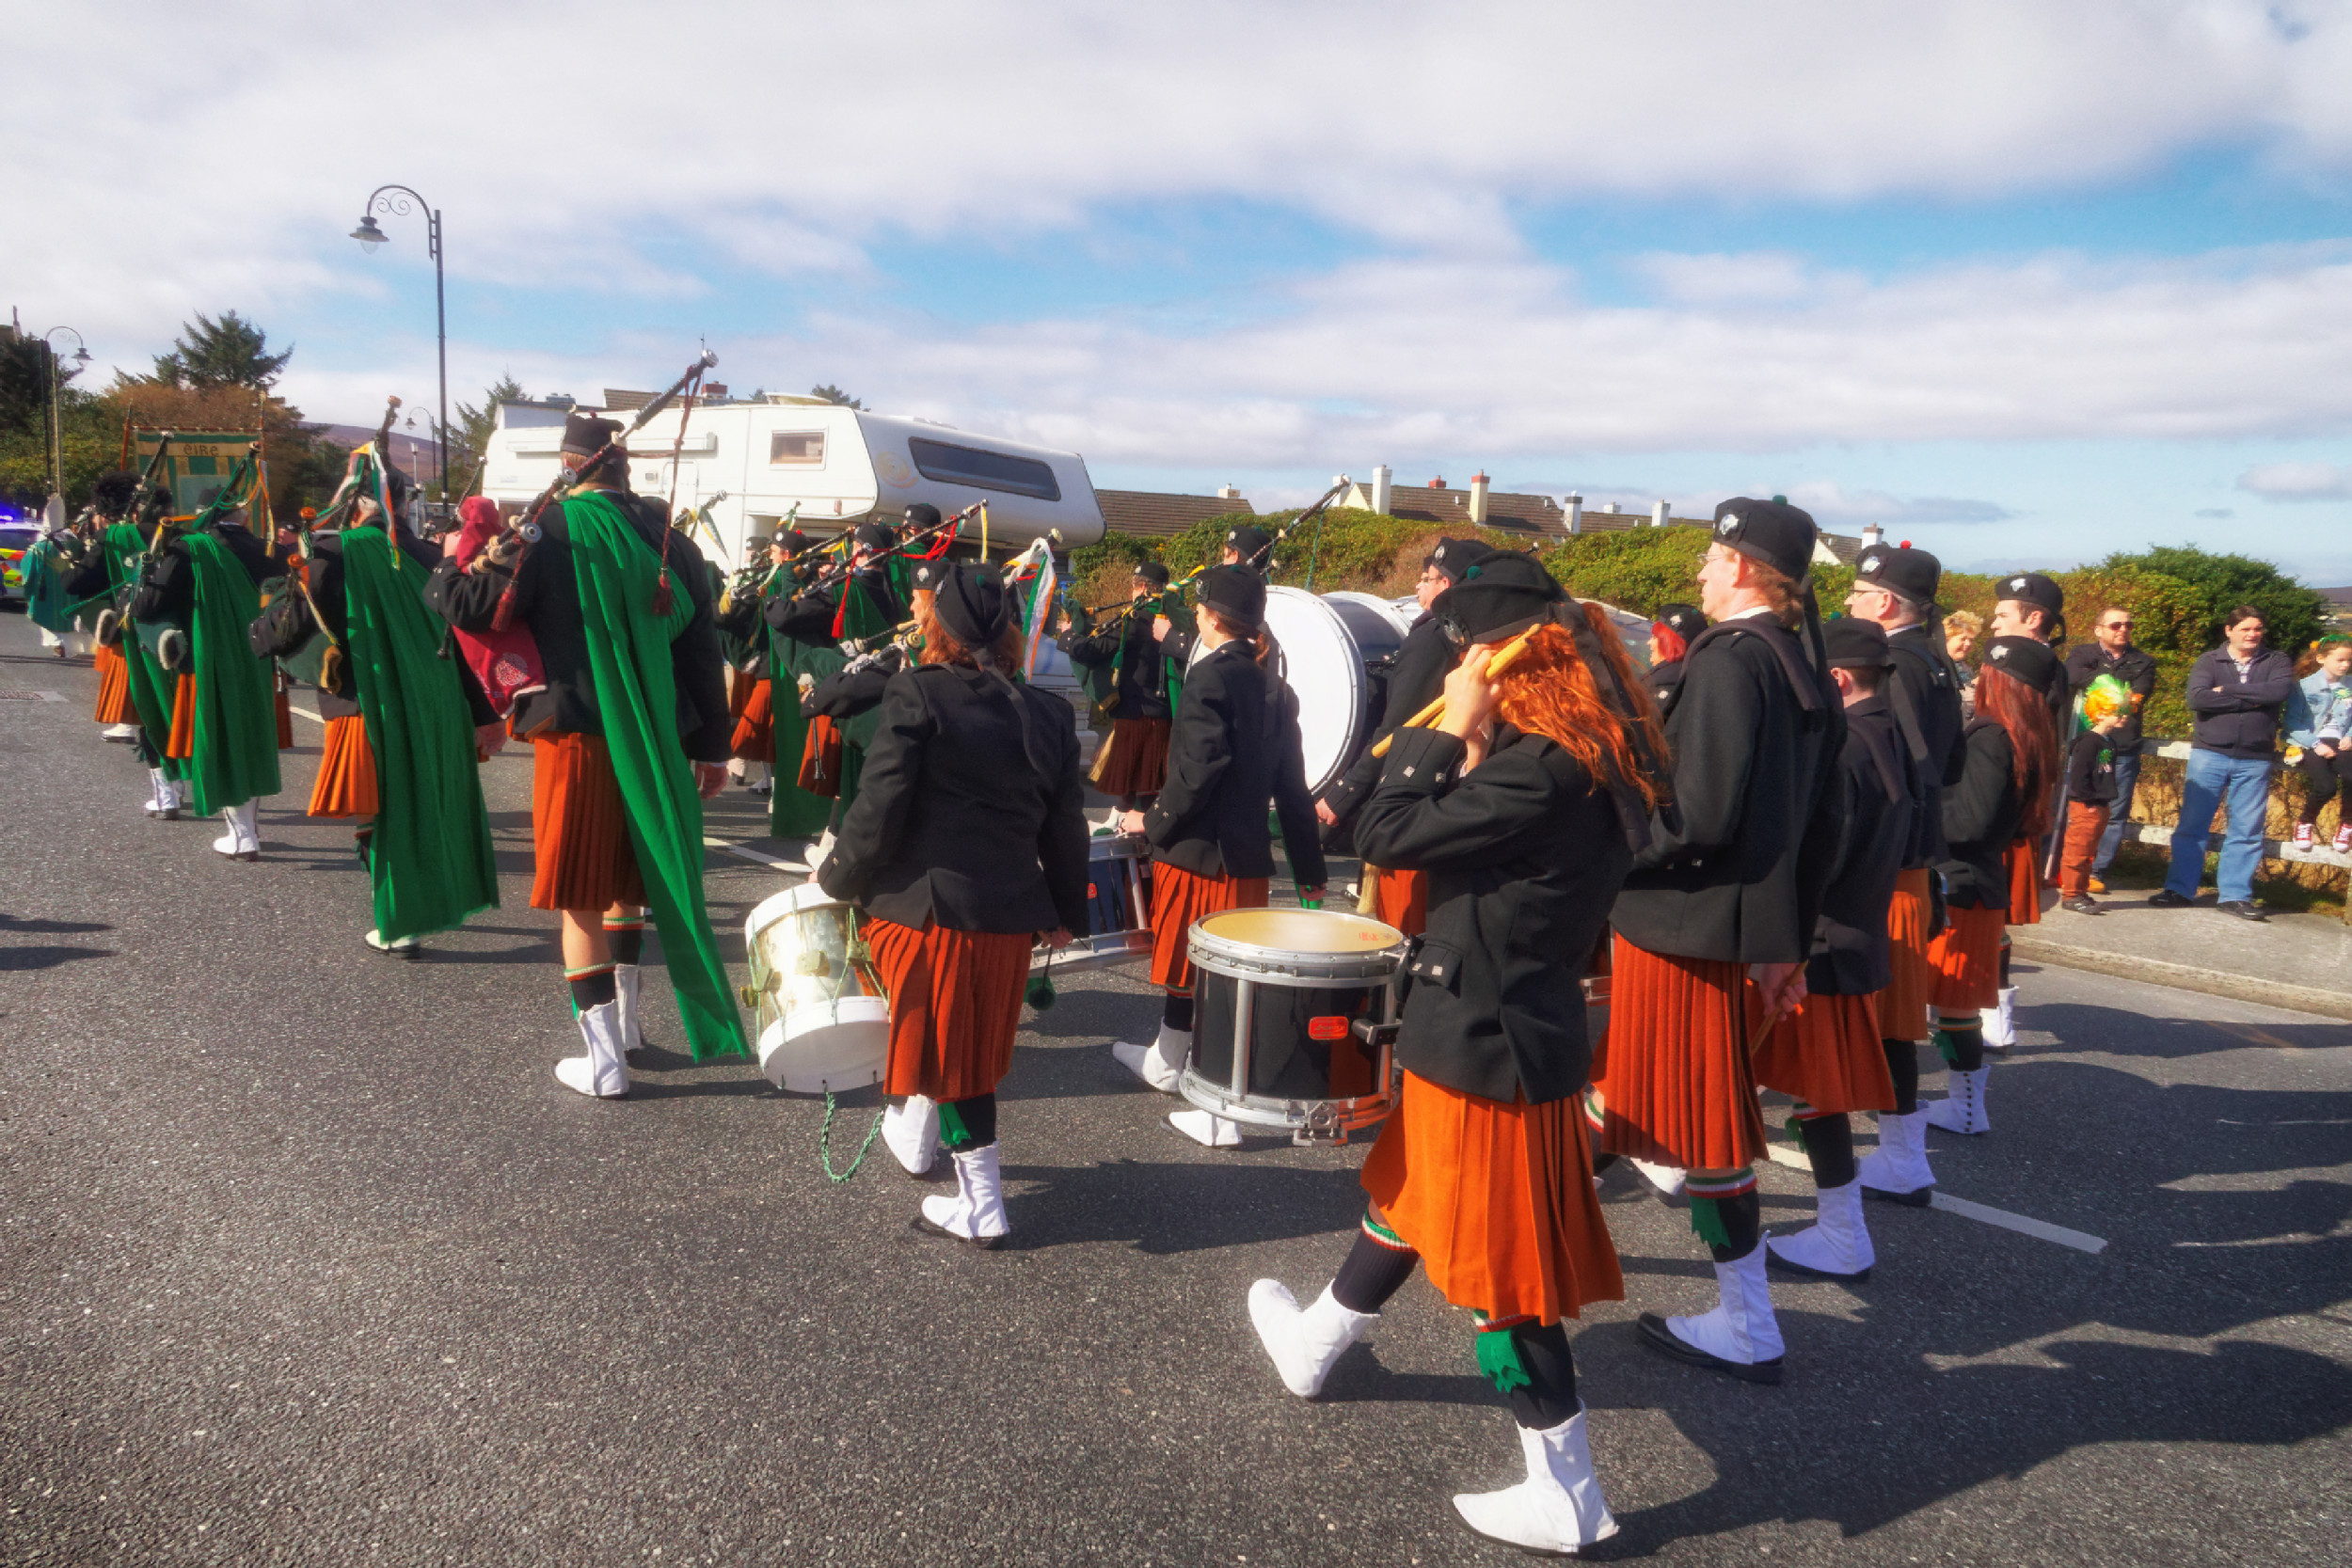 20160320130758-ie-achill-sound_parade-_DxO_13in_DxO96